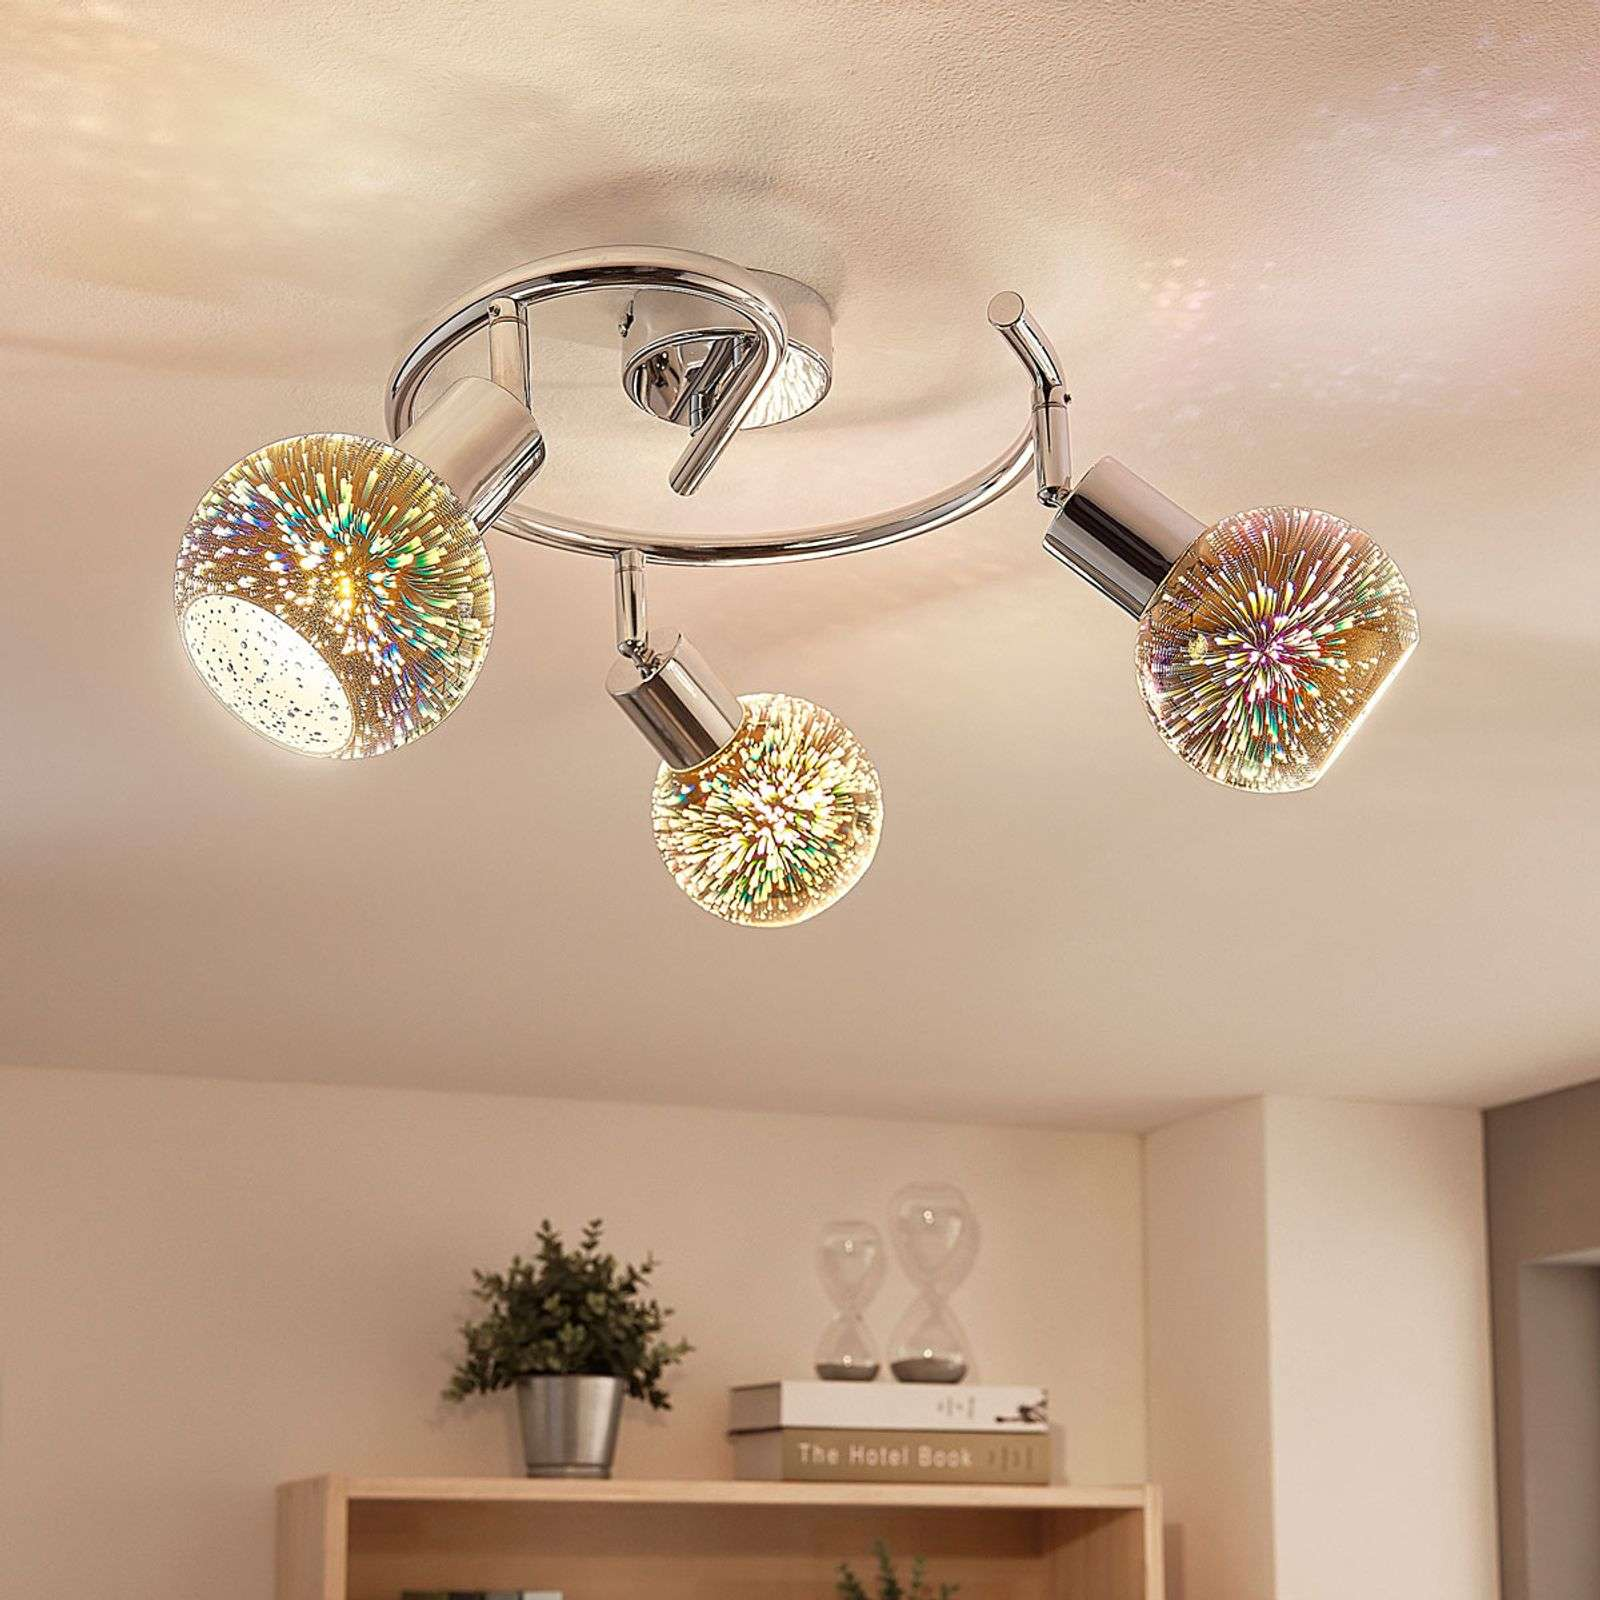 Plafonnier rond LED 3 lampes Isumi verre Firework